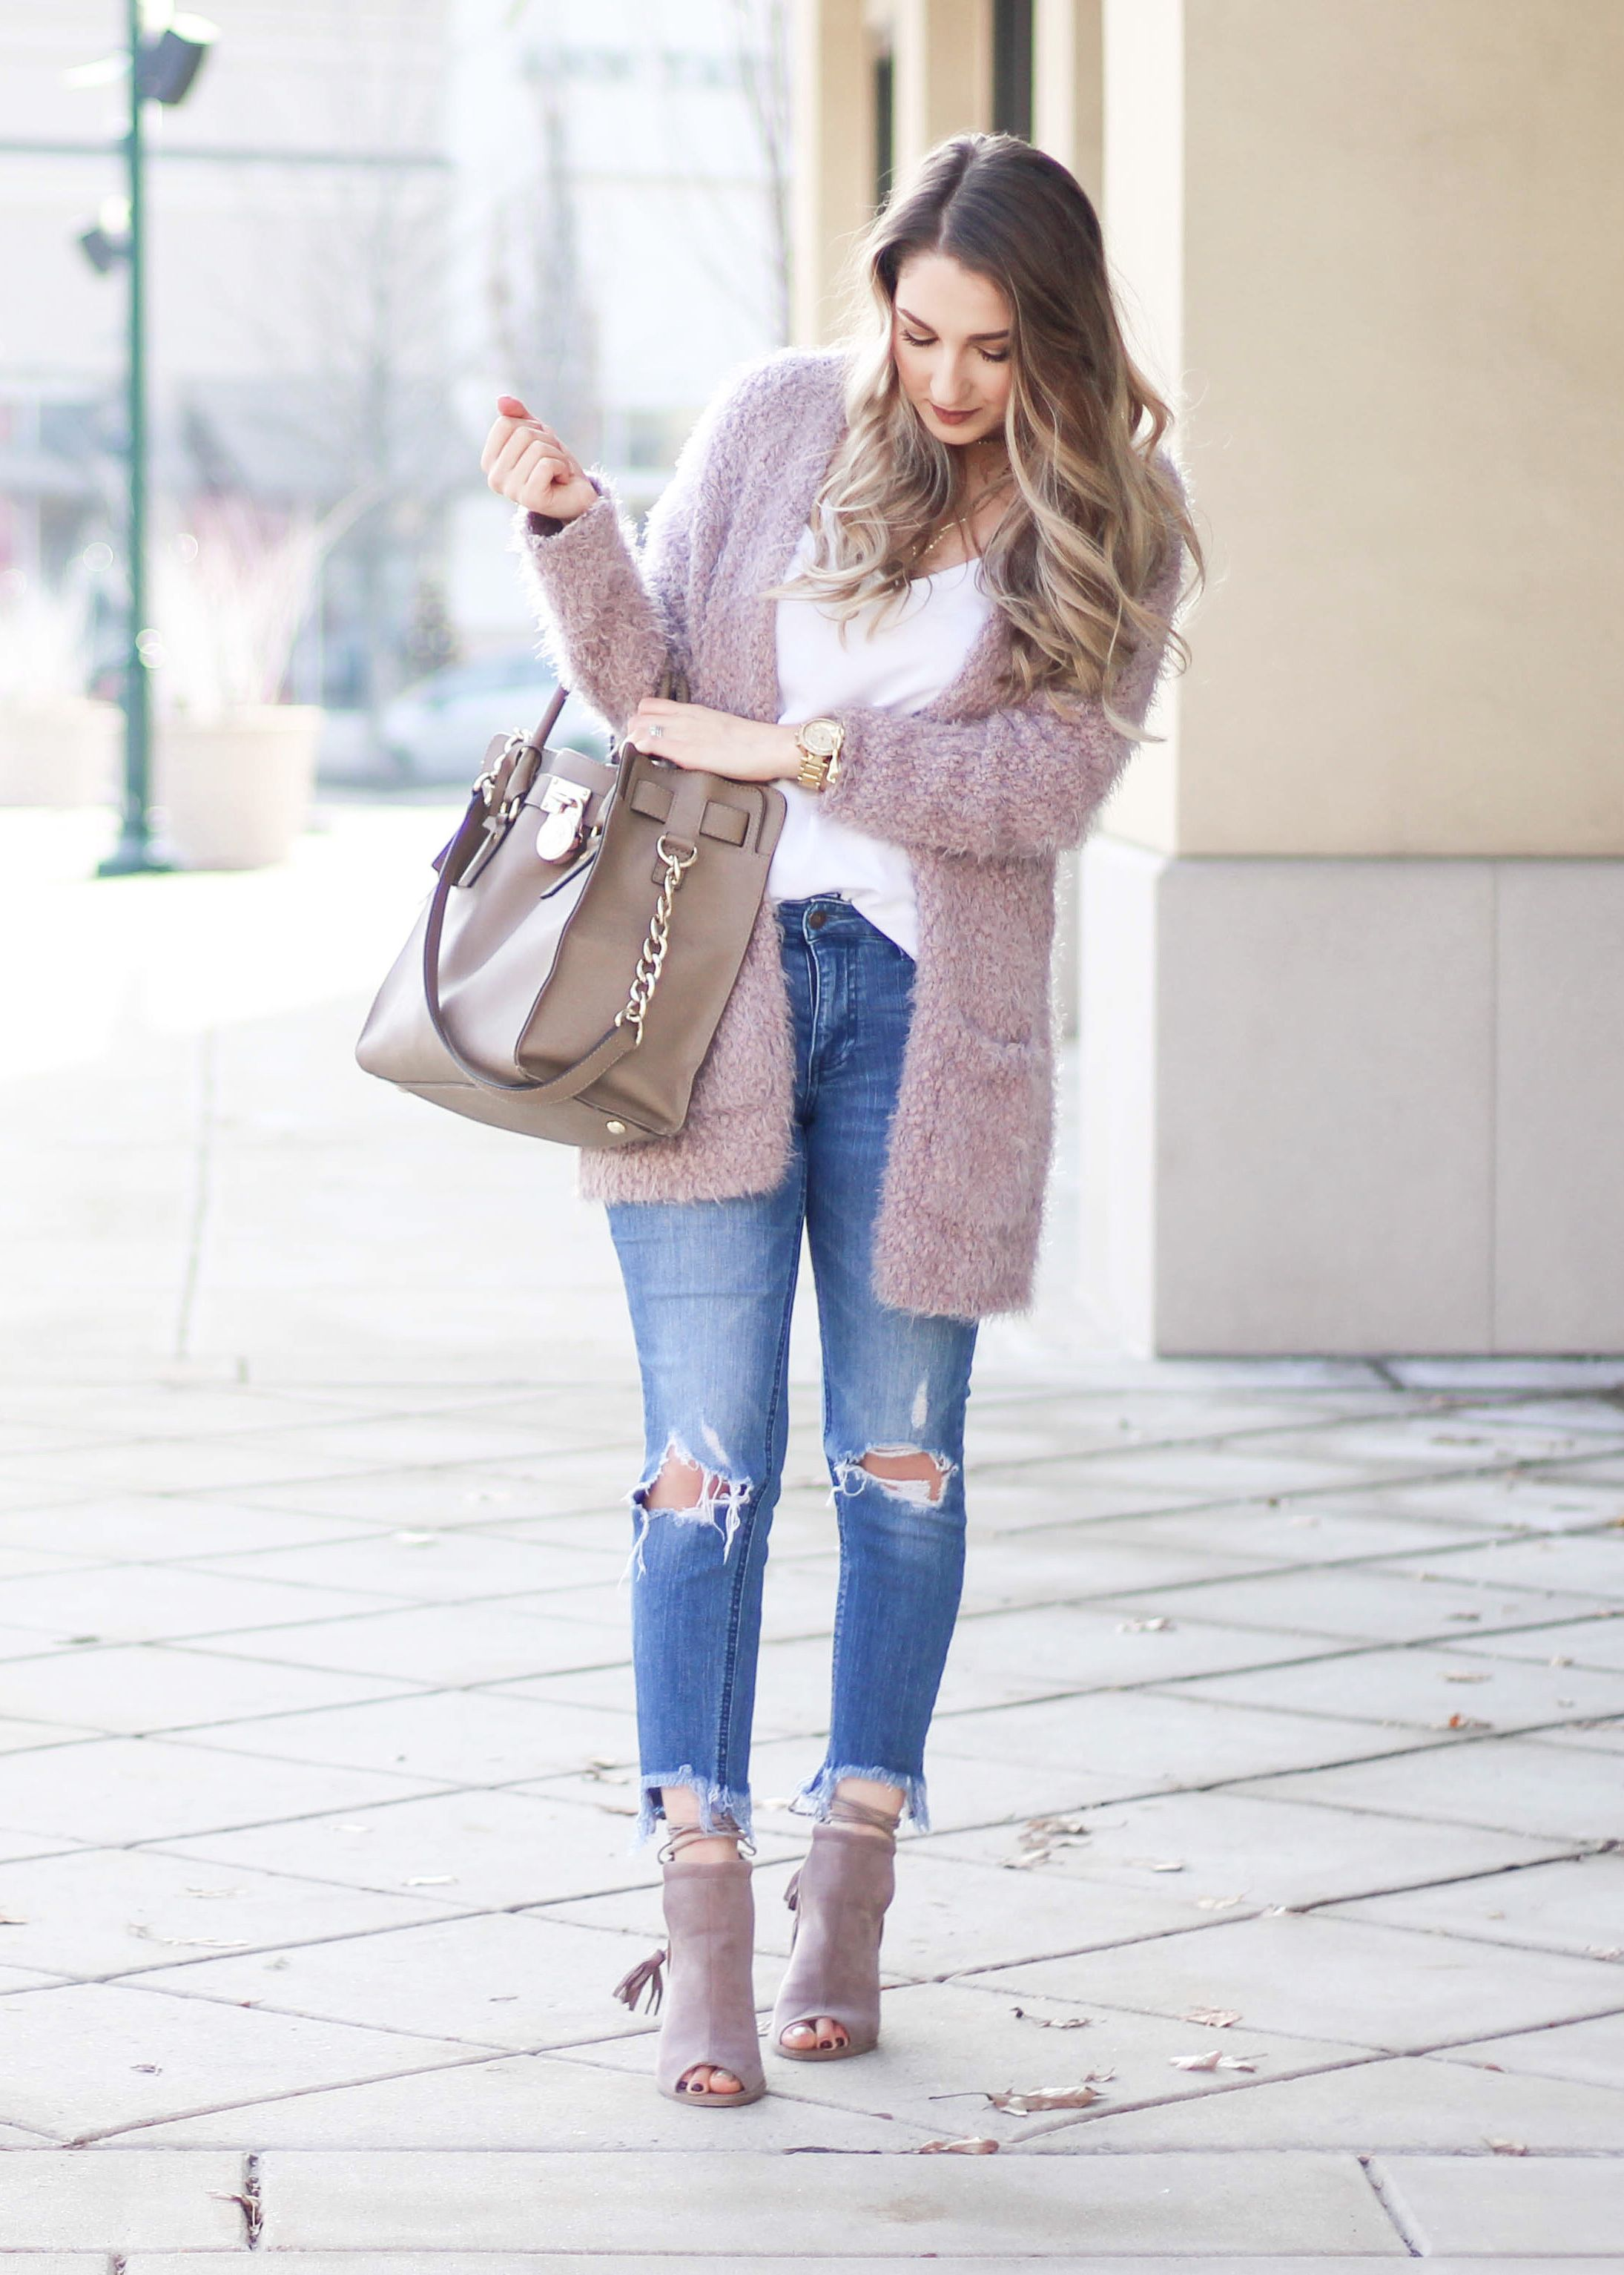 WHITE & BLUSH OUTFIT CRUSH | Spring outfits classy, Spring ...